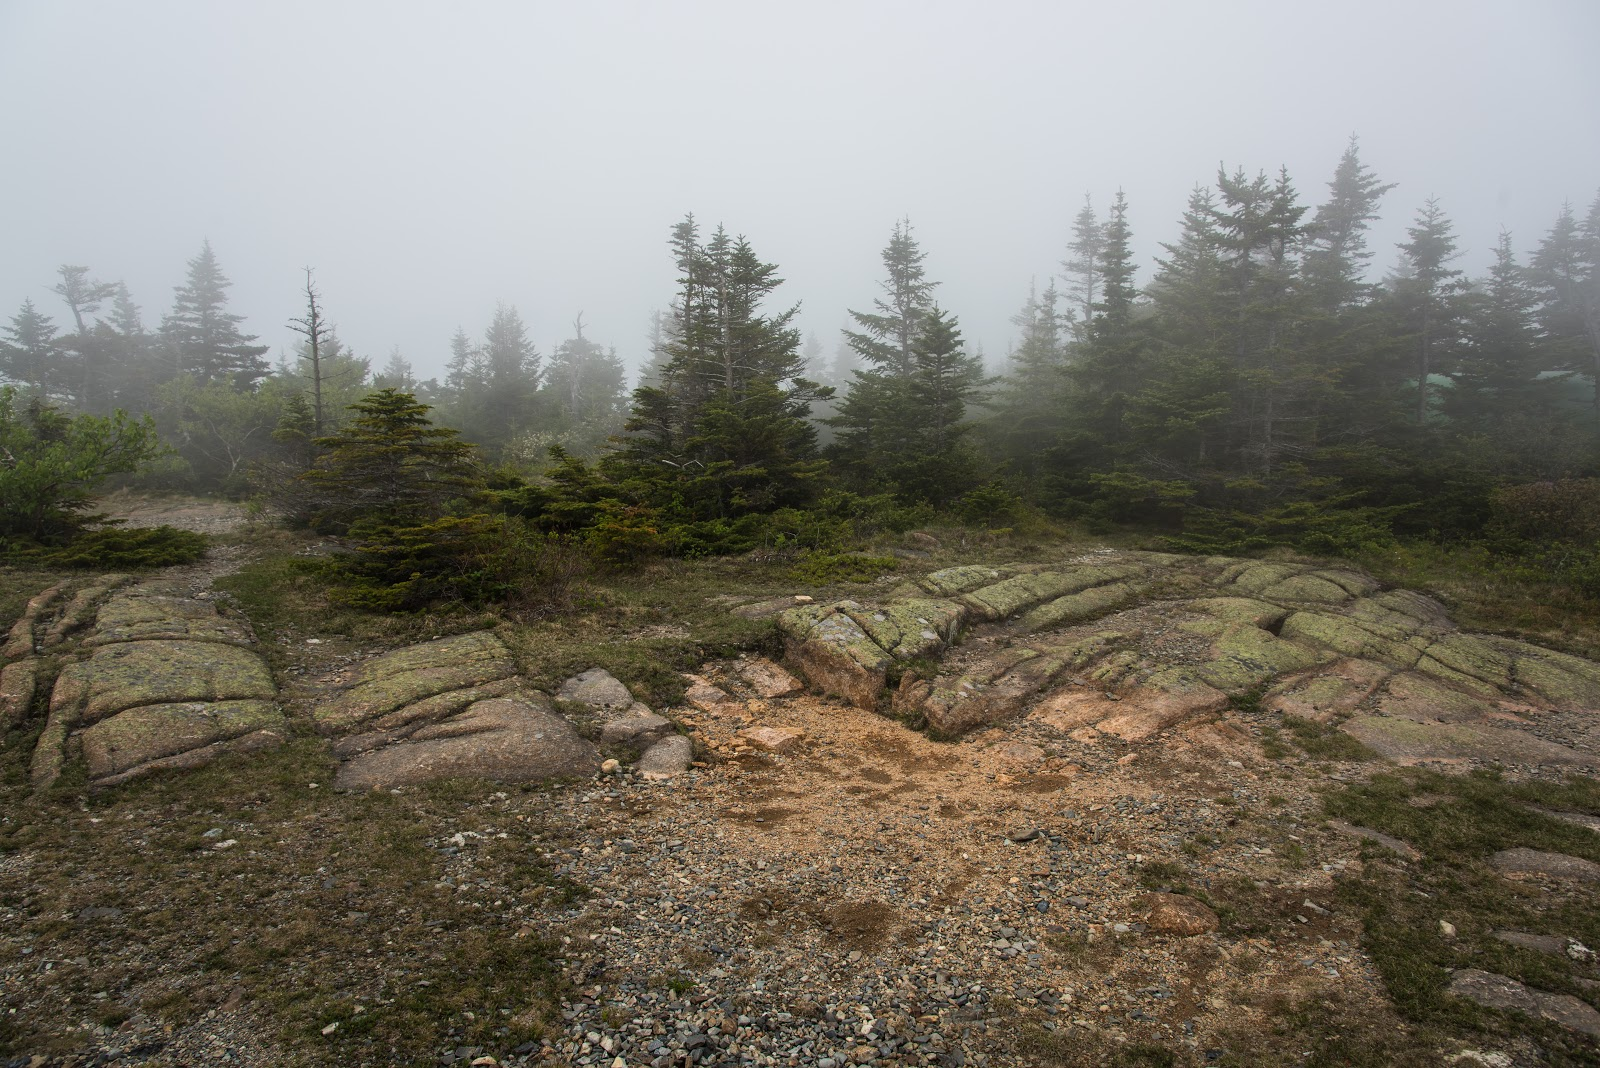 The Highest Point of Cadillac Mountain, Accessed via Cadillac North  Ridge Trail (Image ©2015 Ben Sullivan)